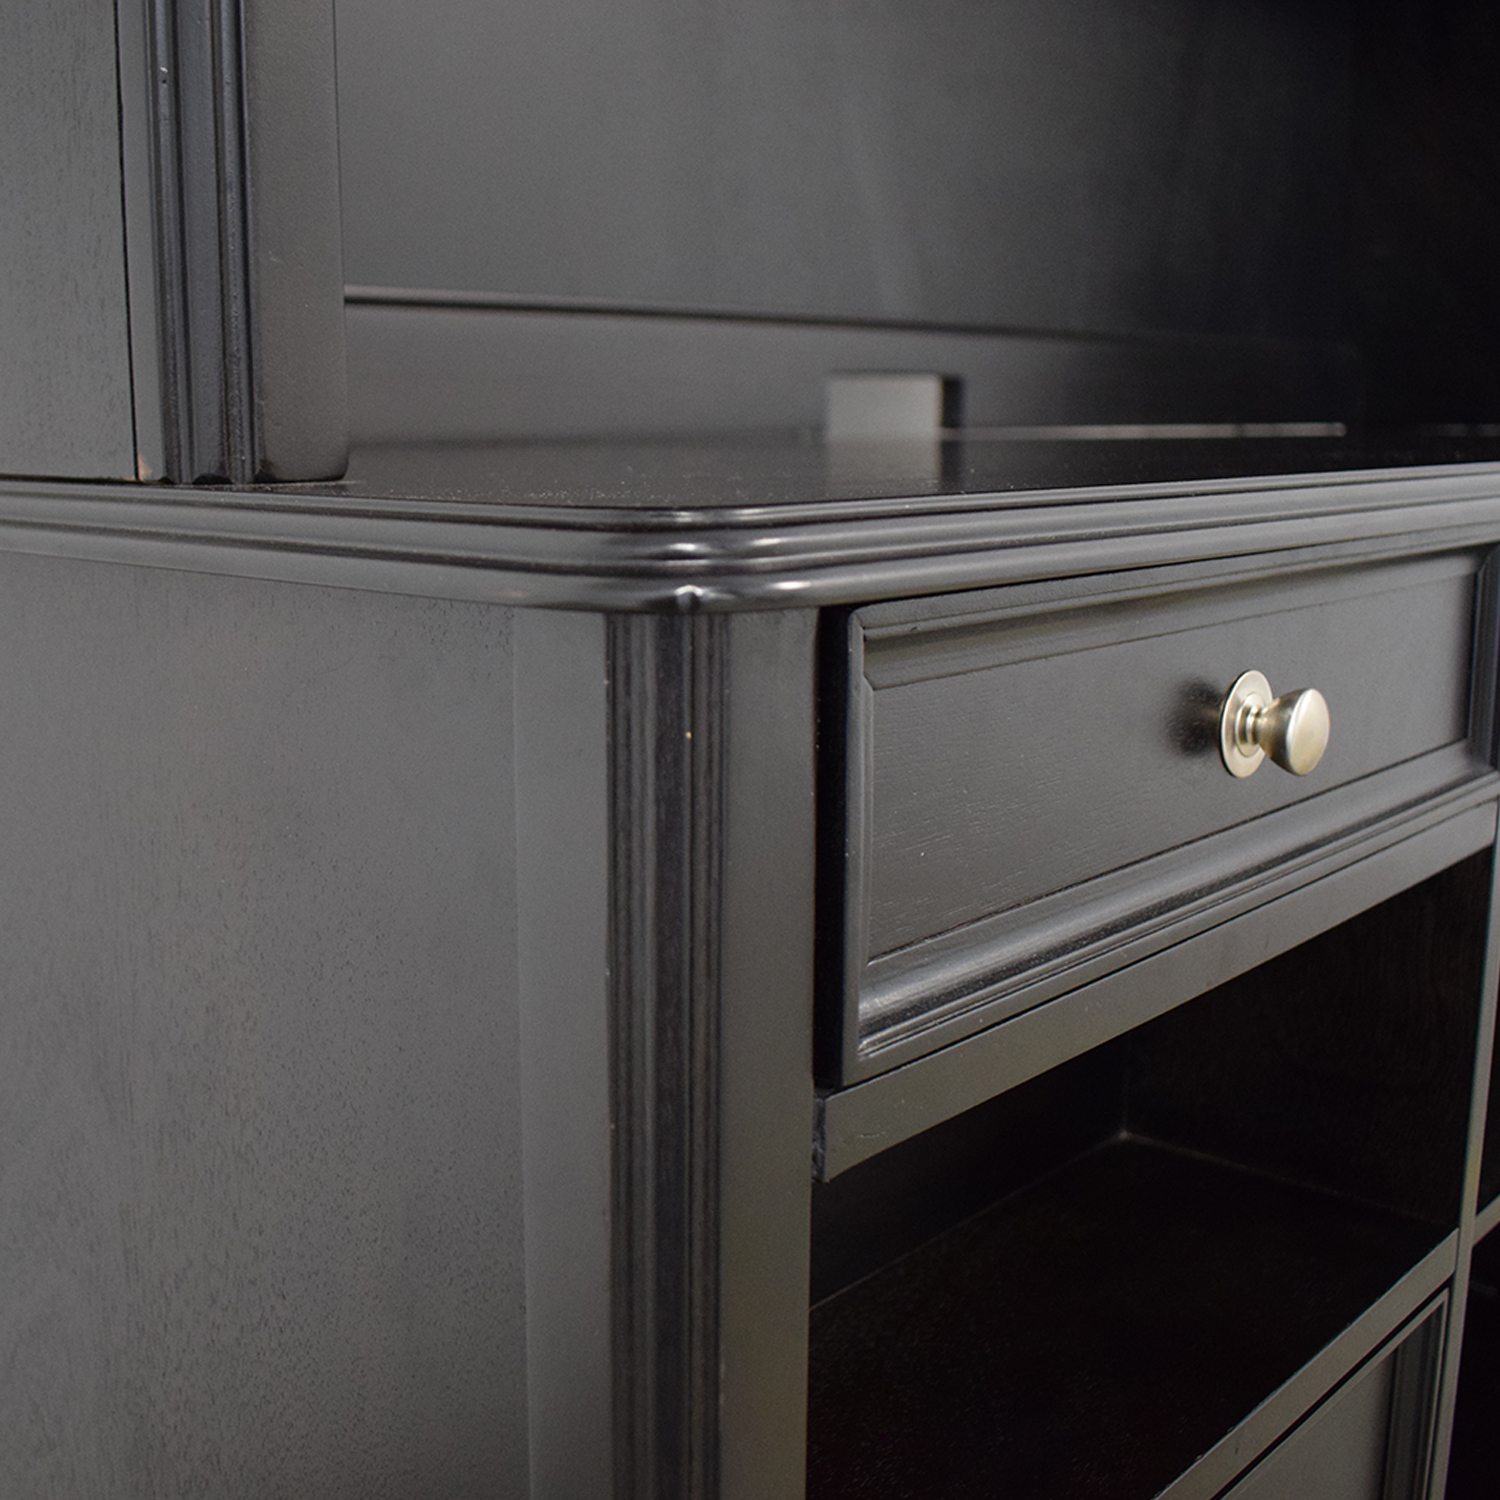 Ashley Furniture Ashley Furniture Large Credenza and Hutch for sale